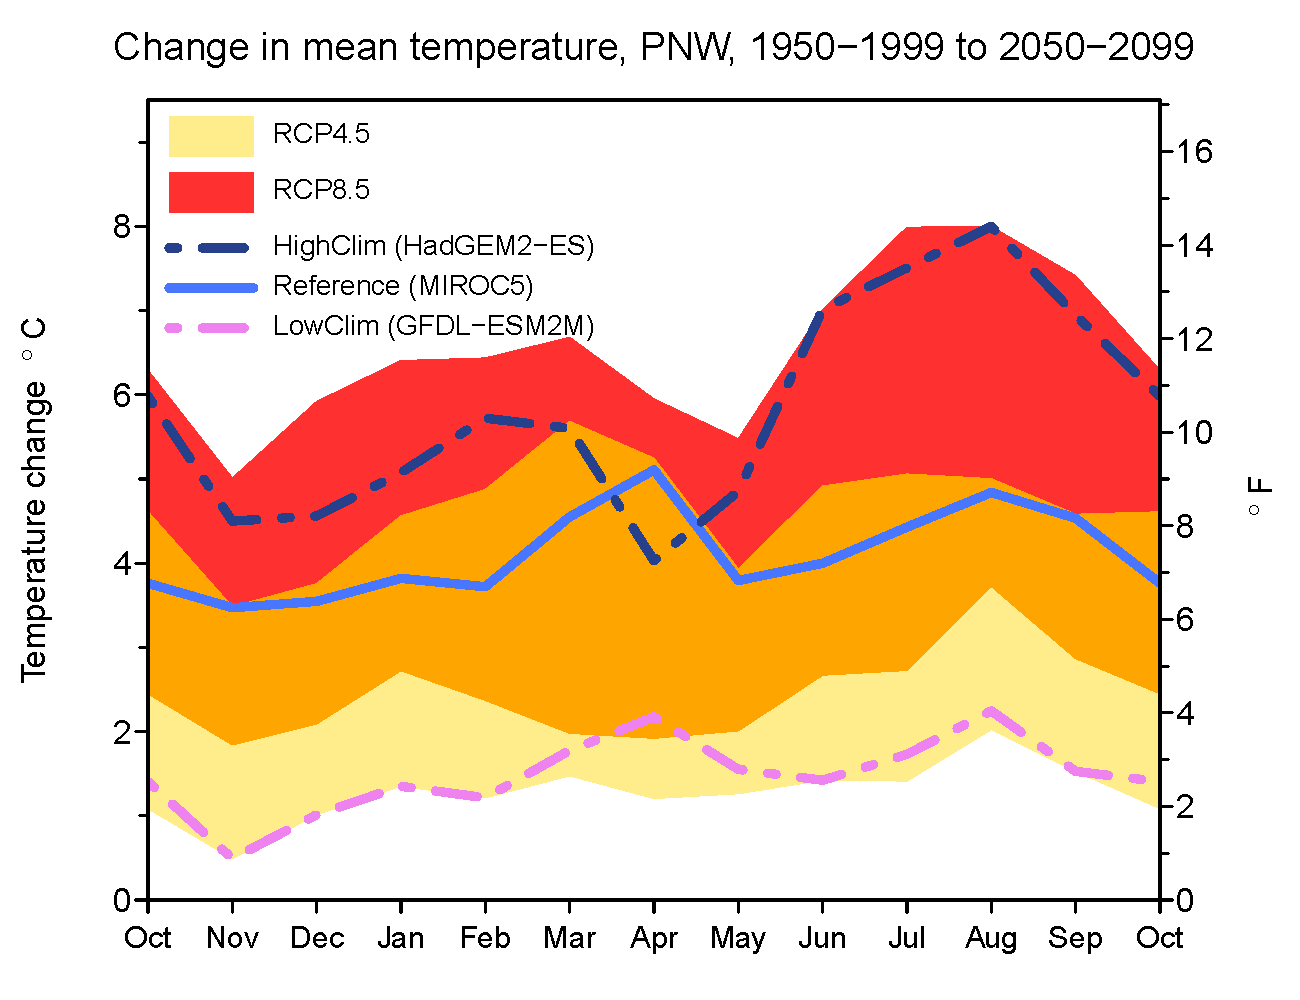 Changes in mean temperature by month for the period 2050-2099 from the historical period 1950-1999 for the Willamette River basin